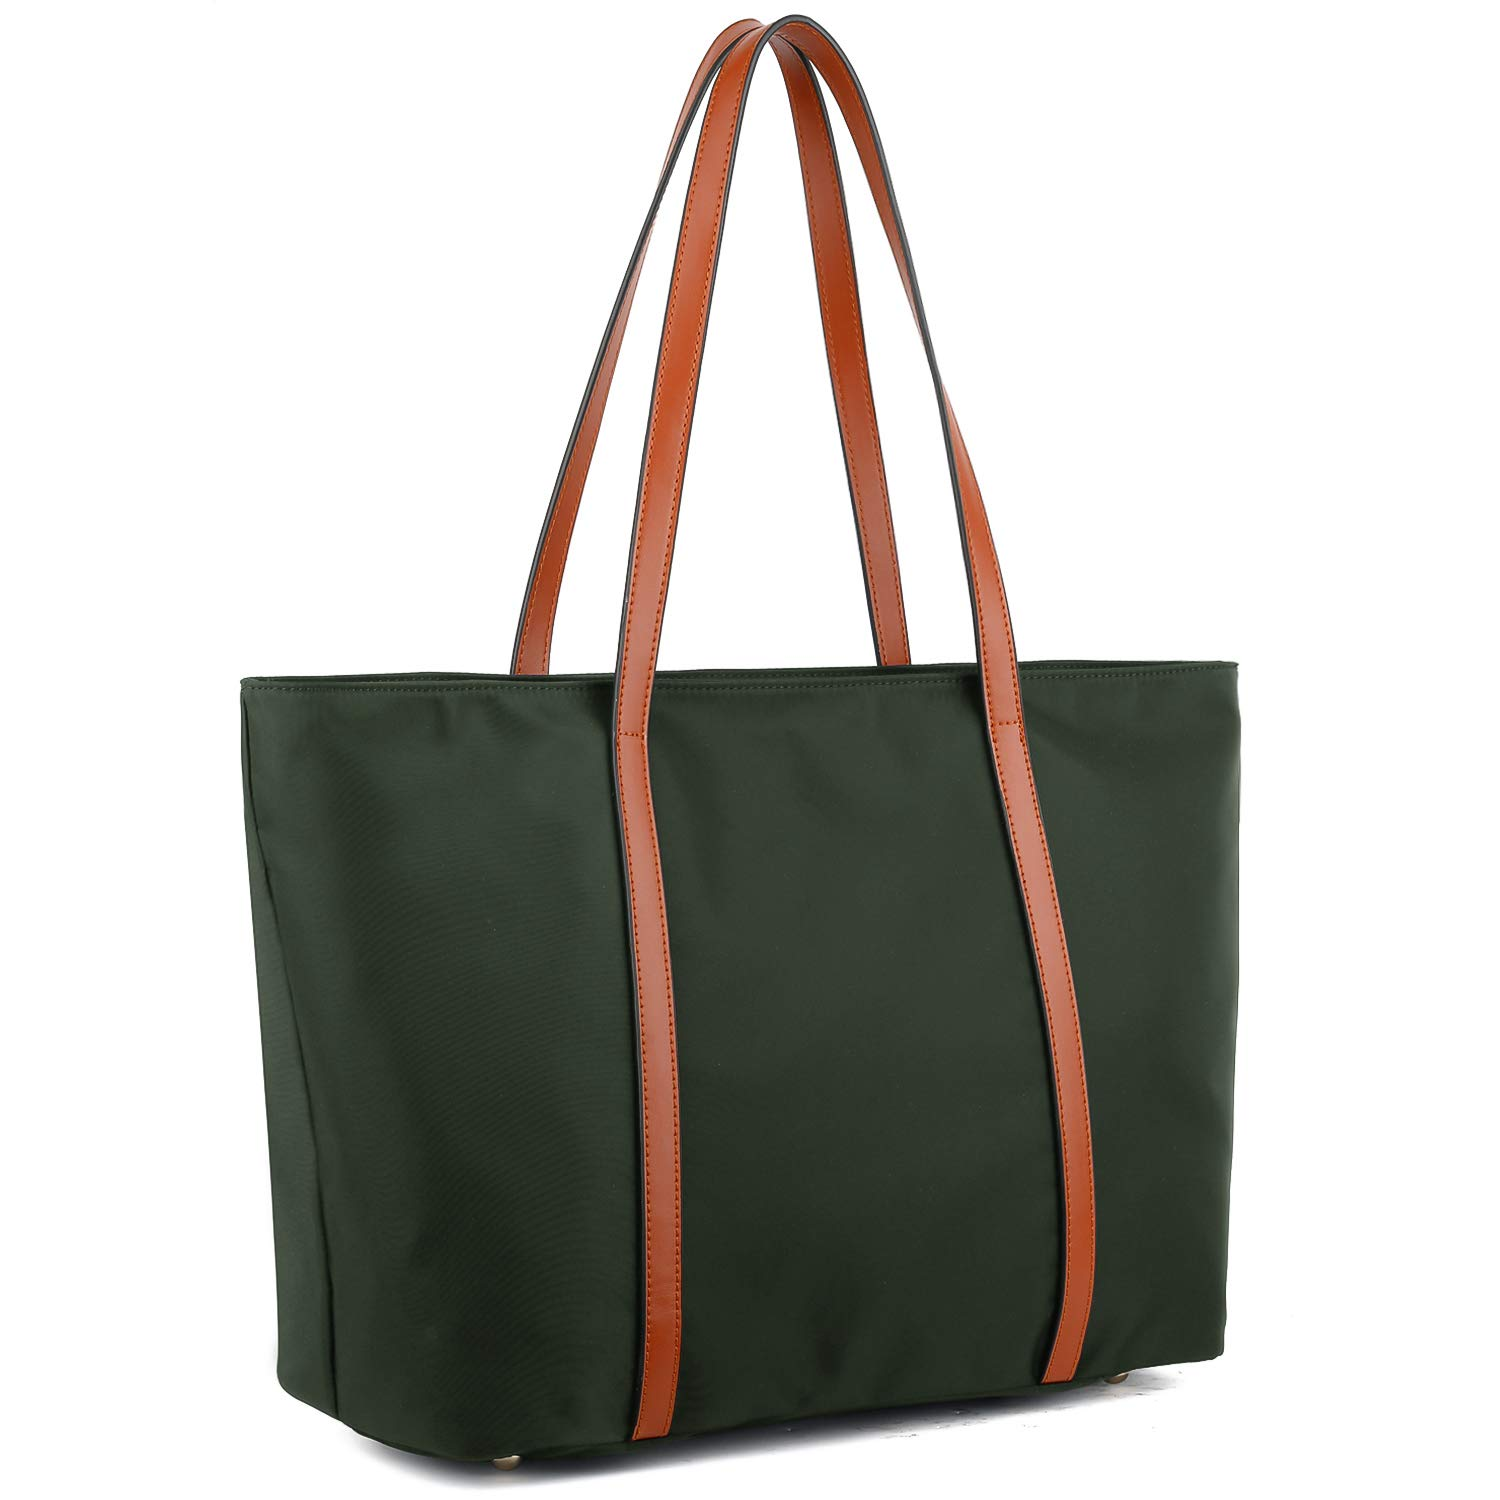 YALUXE Tote for Women Leather Nylon Shoulder Bag Women's Oxford Nylon Large Capacity Work fit 15.6 inch brown&green